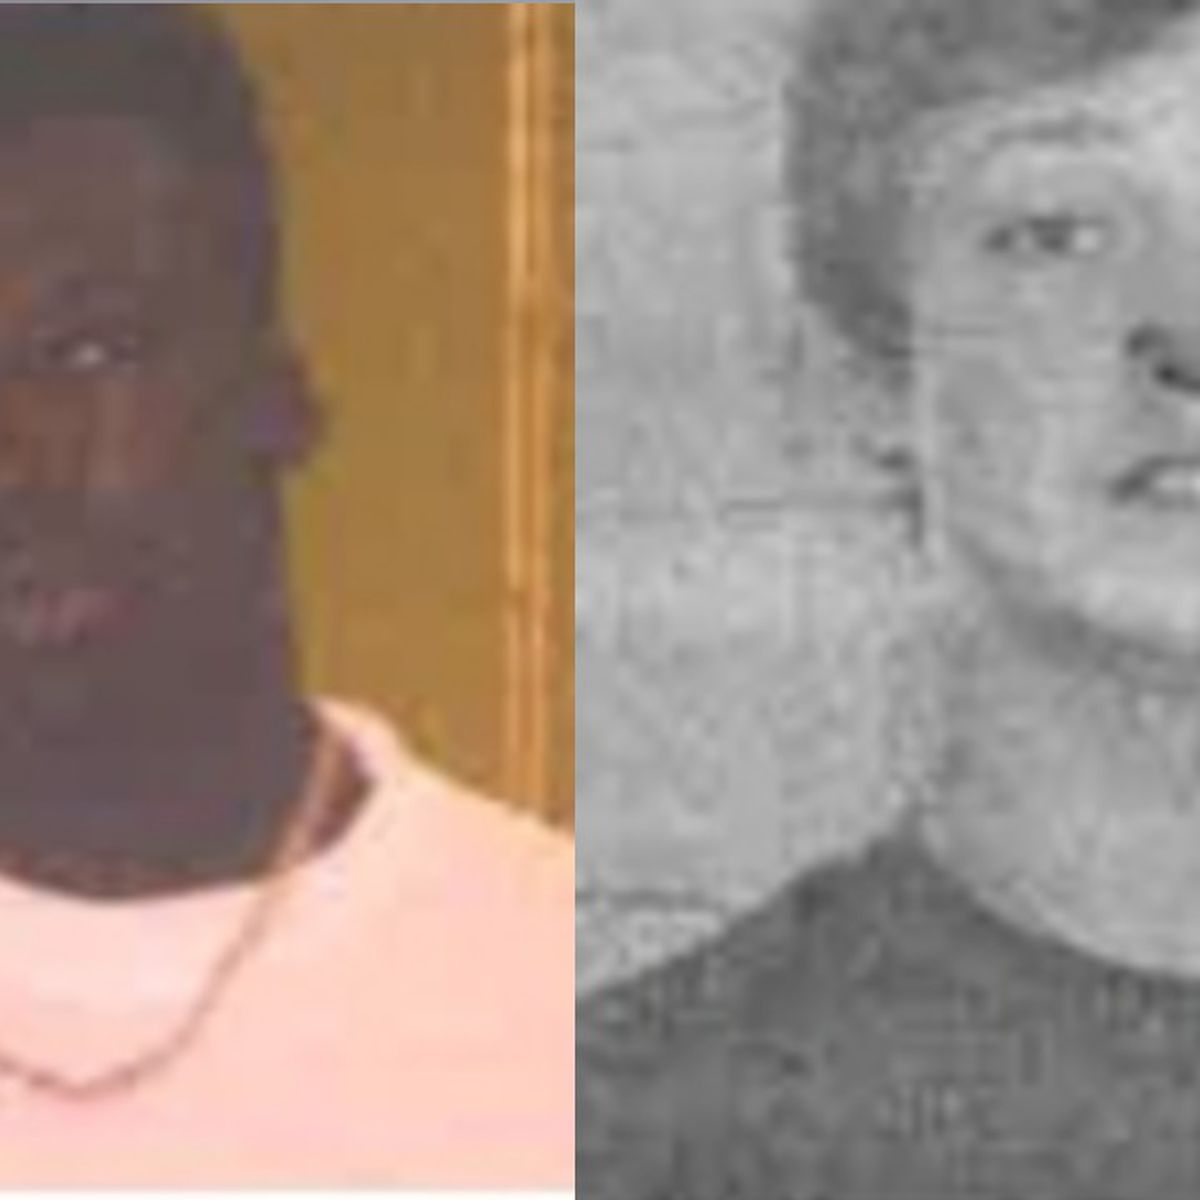 Tuskegee police searching for youth facility runaways